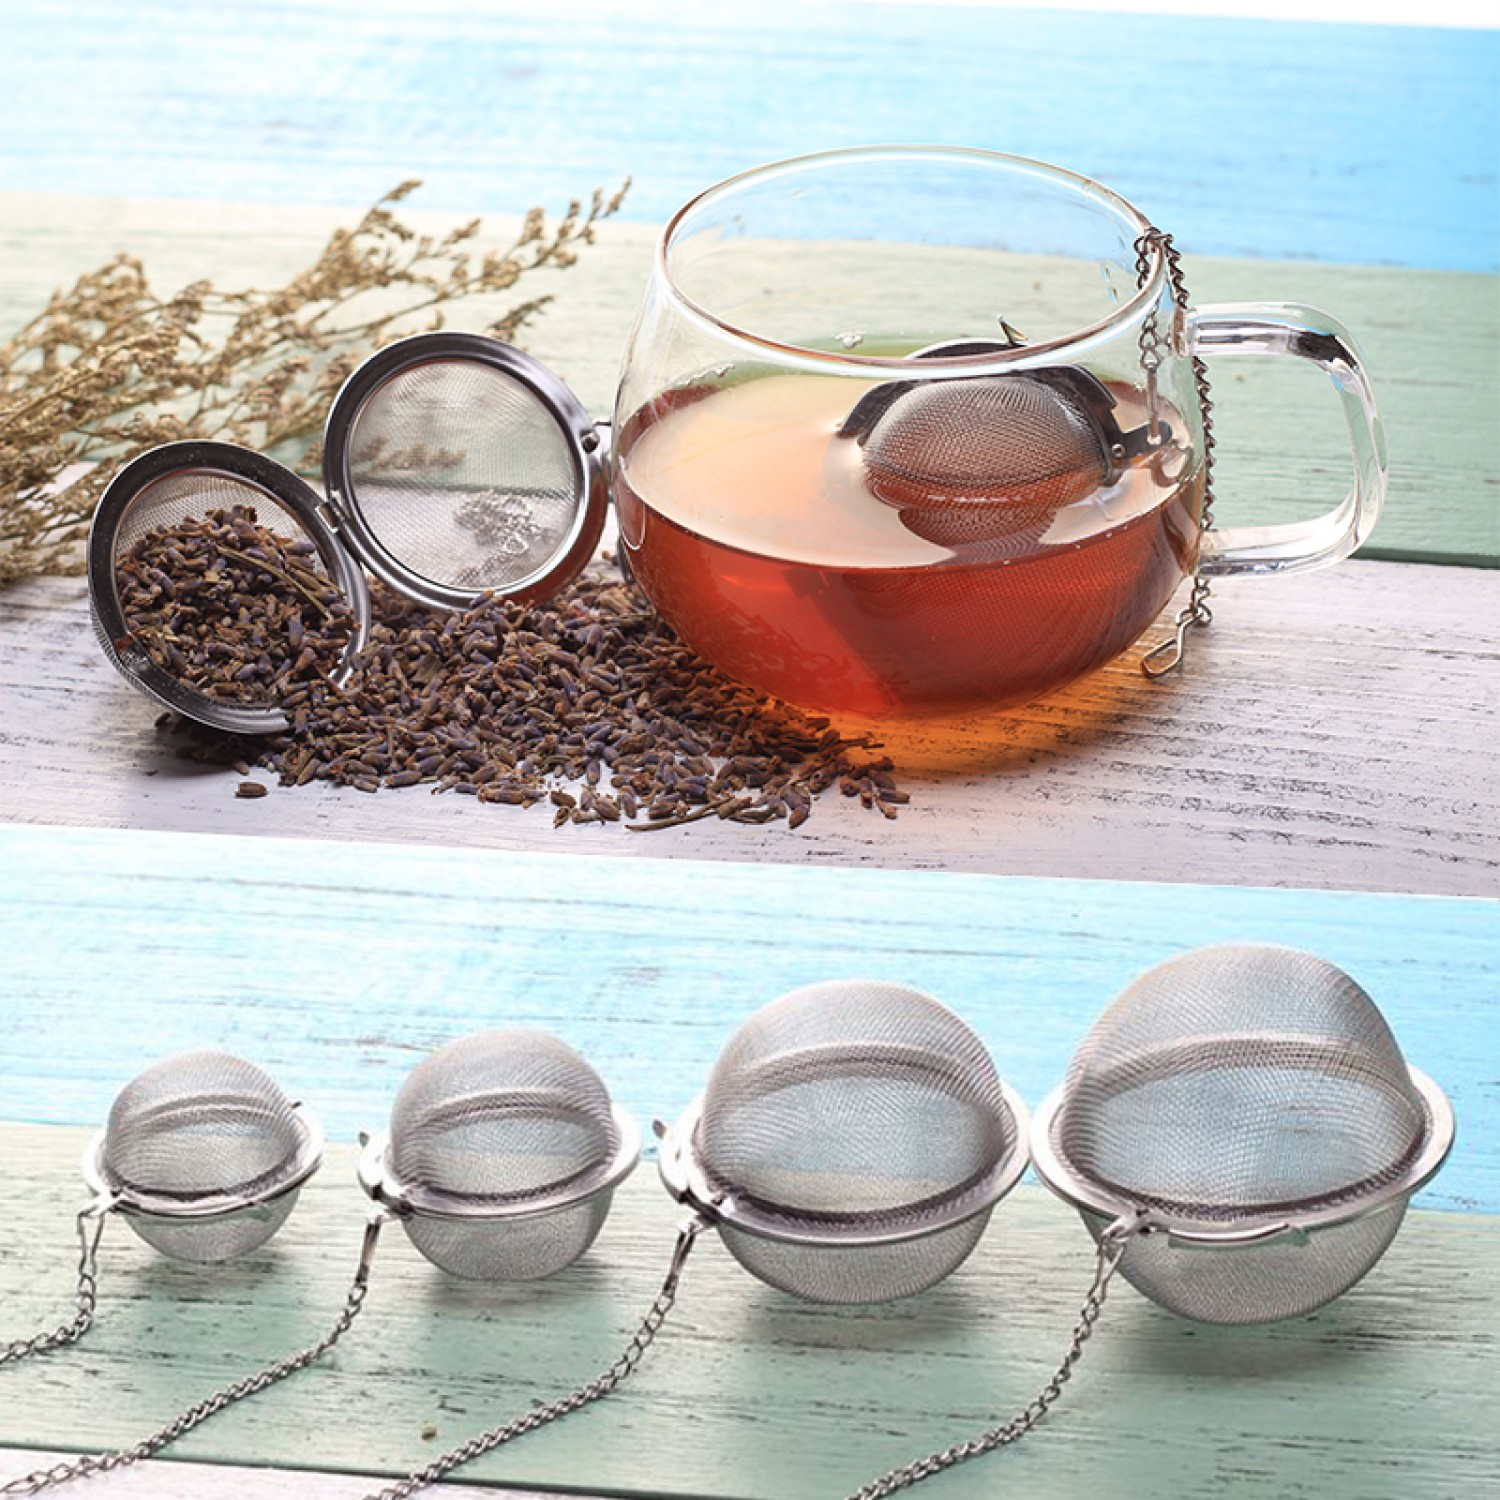 Stainless Steel Mesh Tea Infuser Ball 4.5cm With Chain